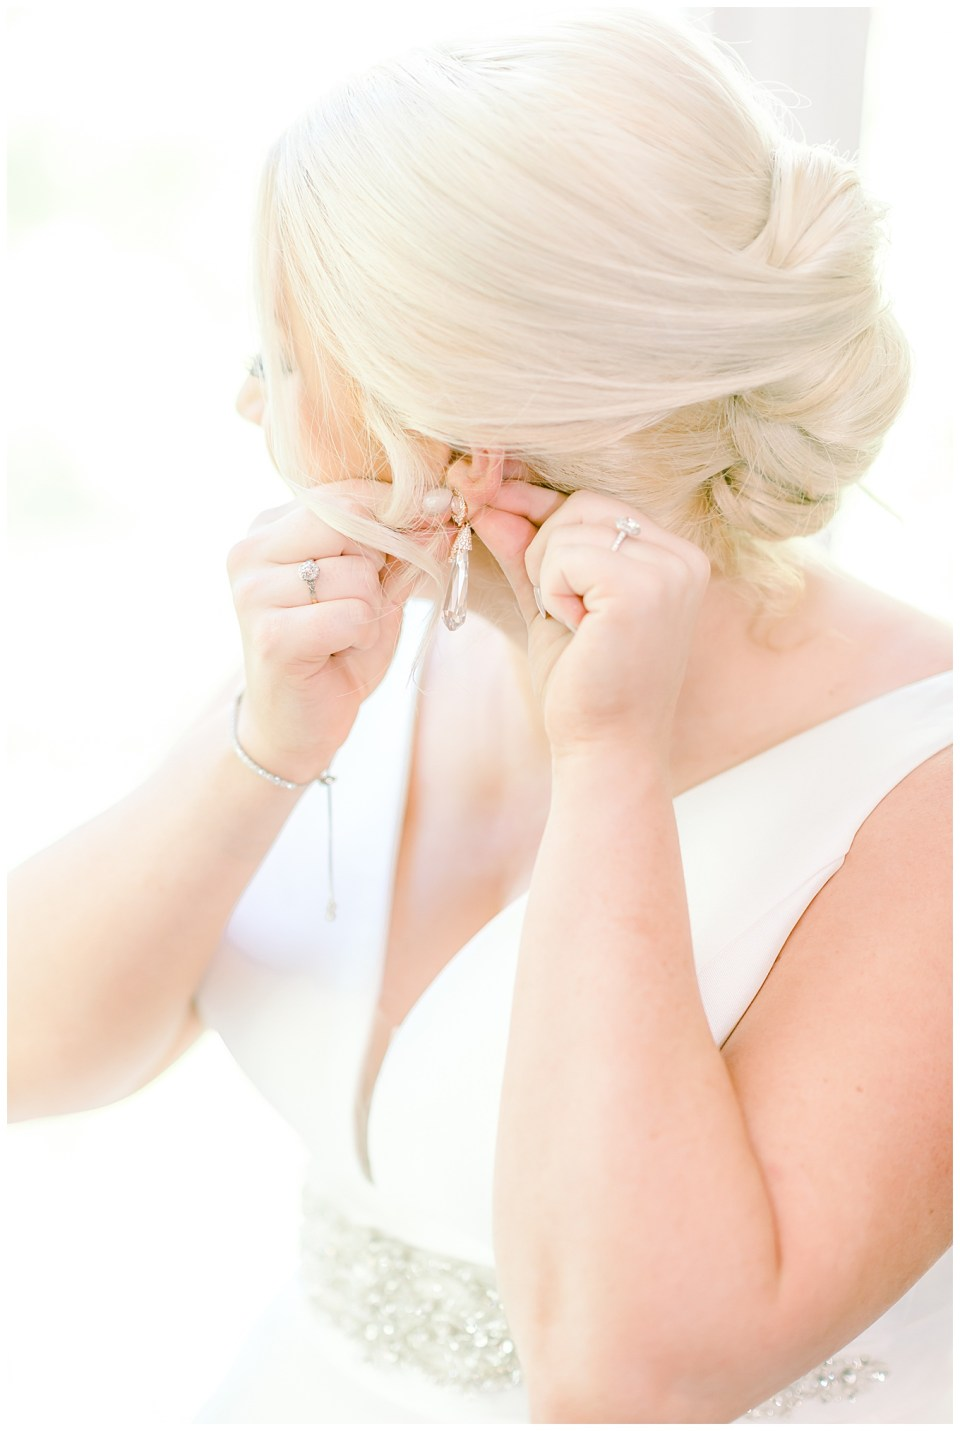 bridal hair and earrings details